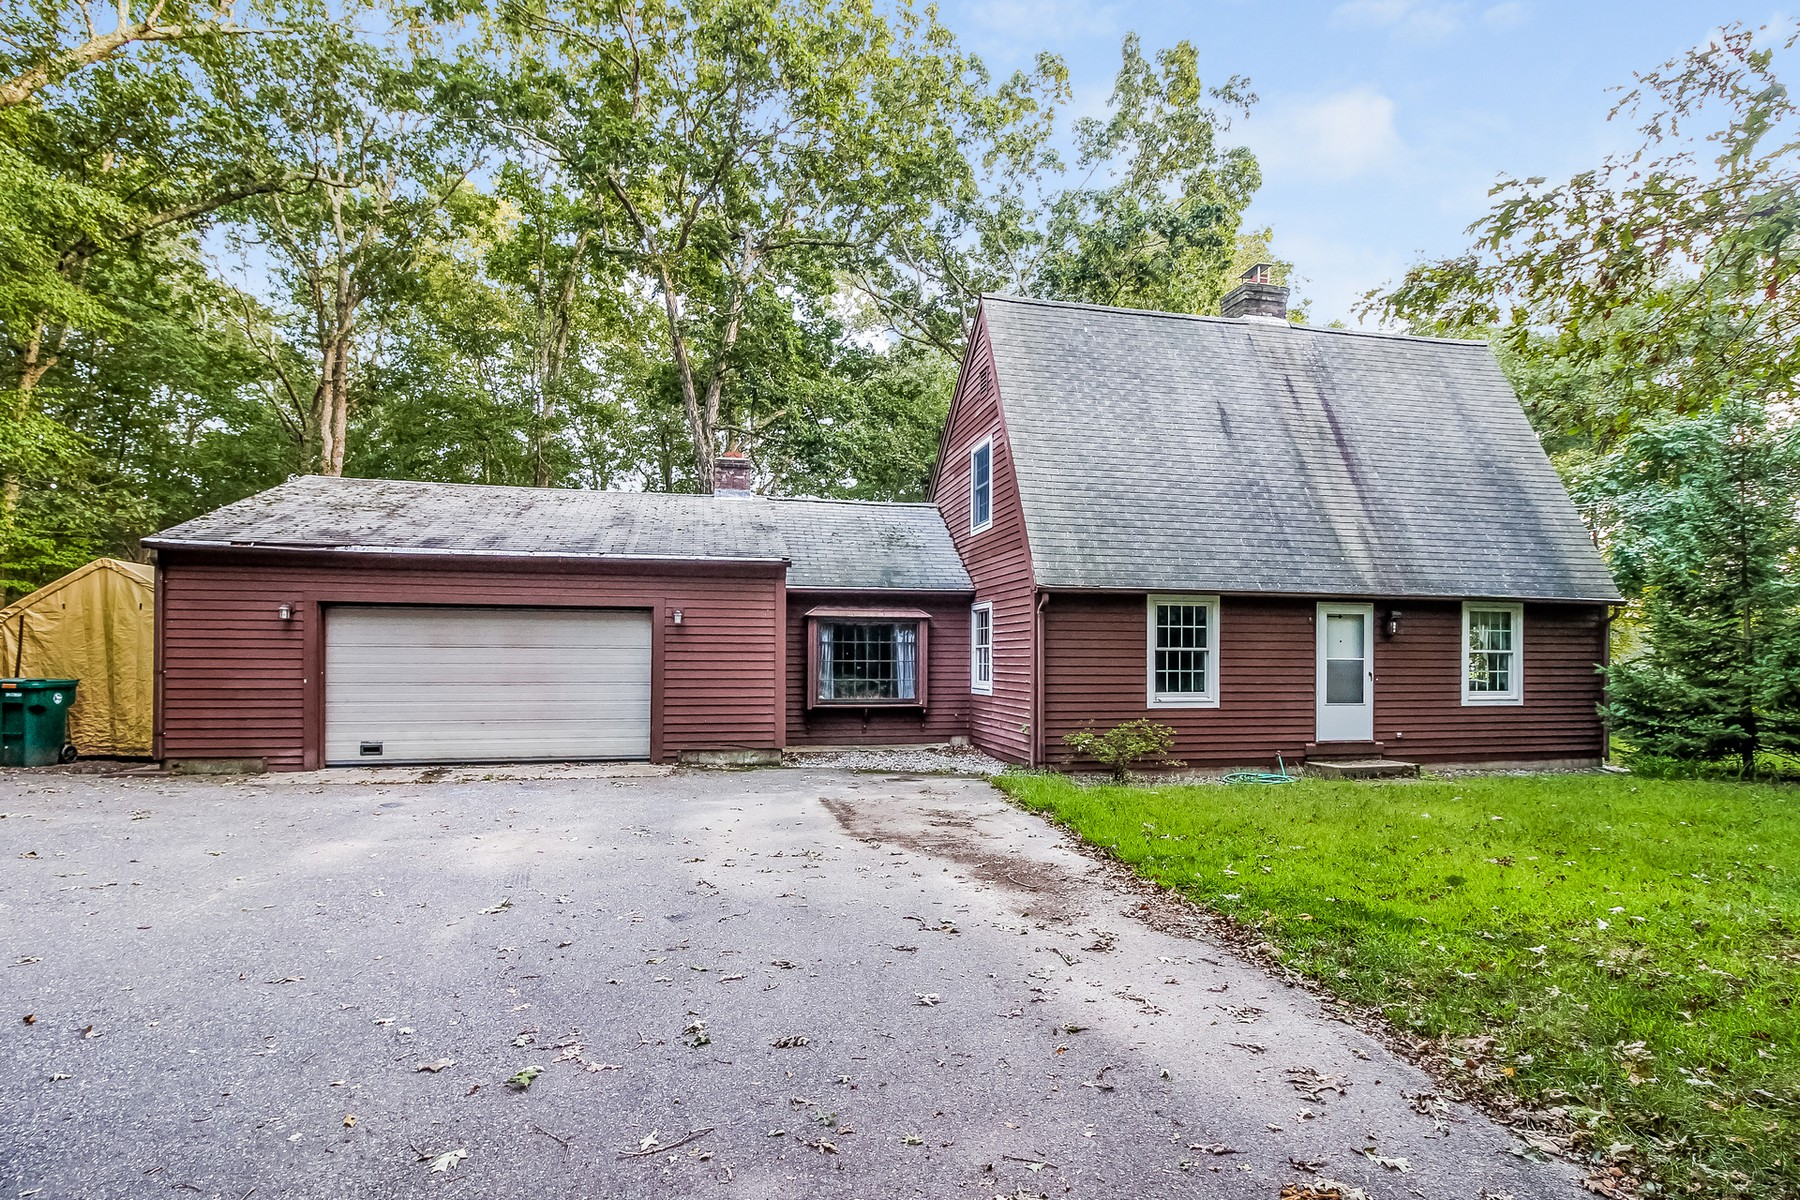 Single Family Home for Sale at Close To Beach 23 Rowland Rd Old Lyme, Connecticut, 06371 United States